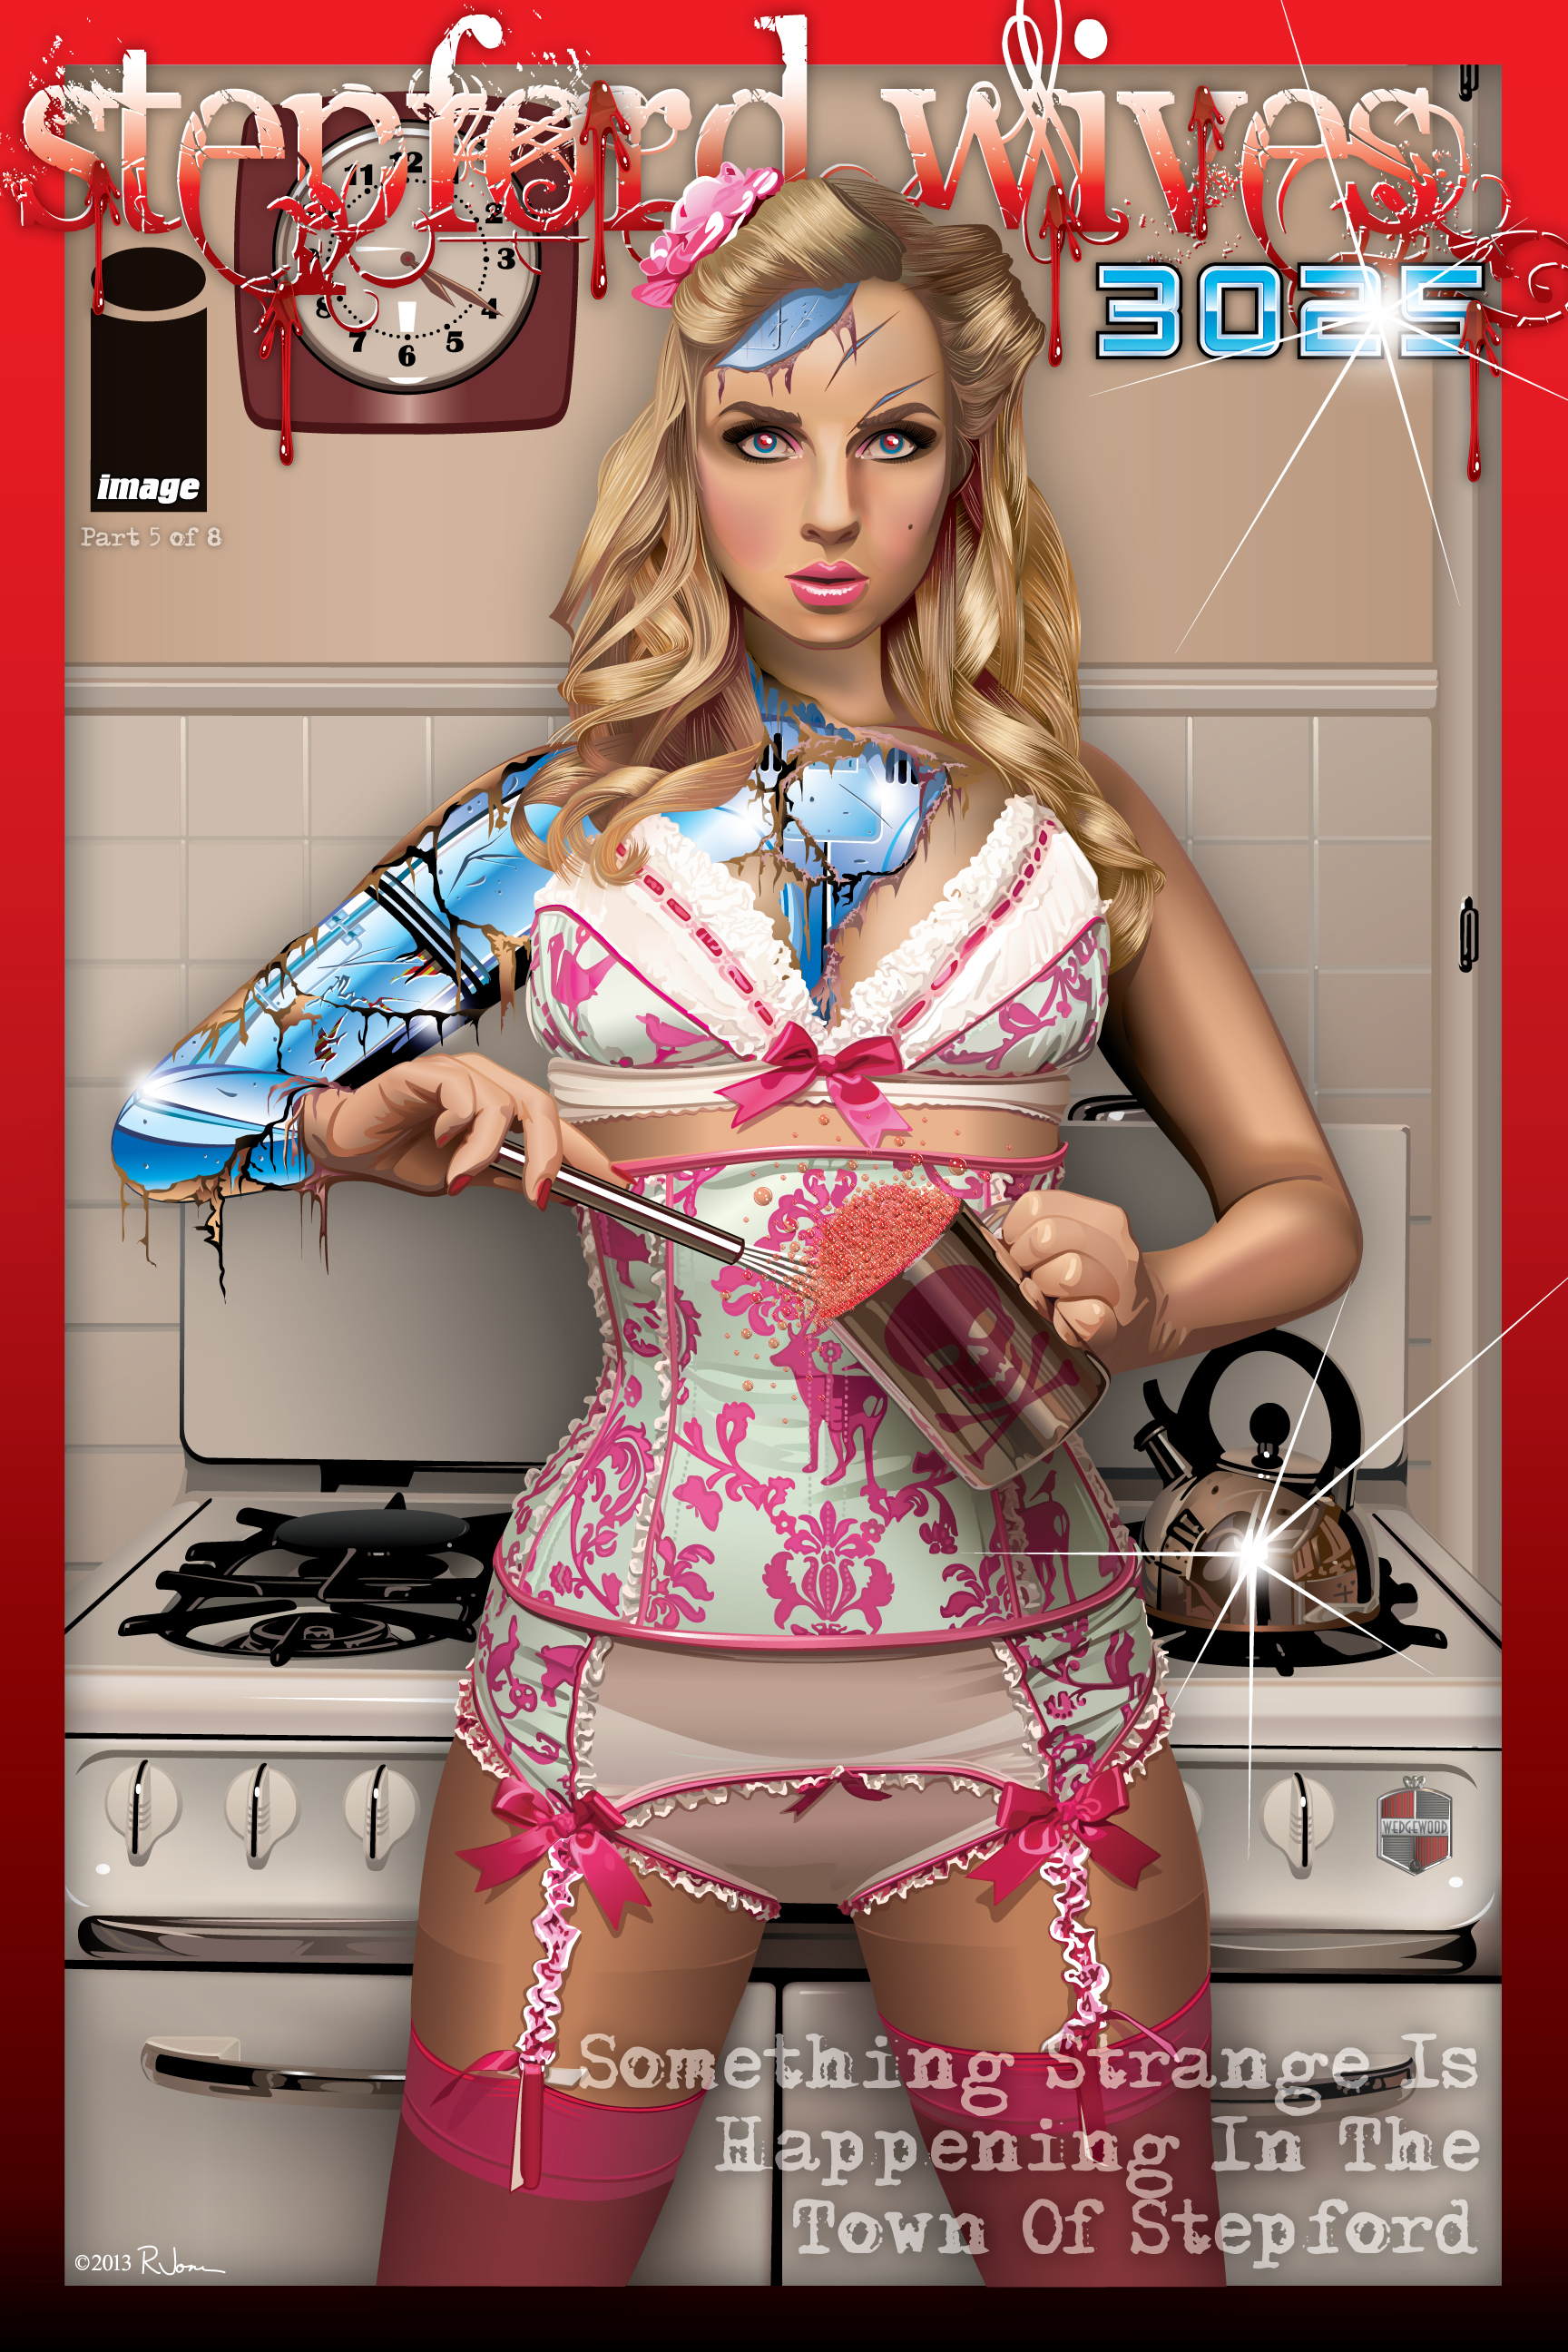 Stepford Wives 3025 by rjonesdesign